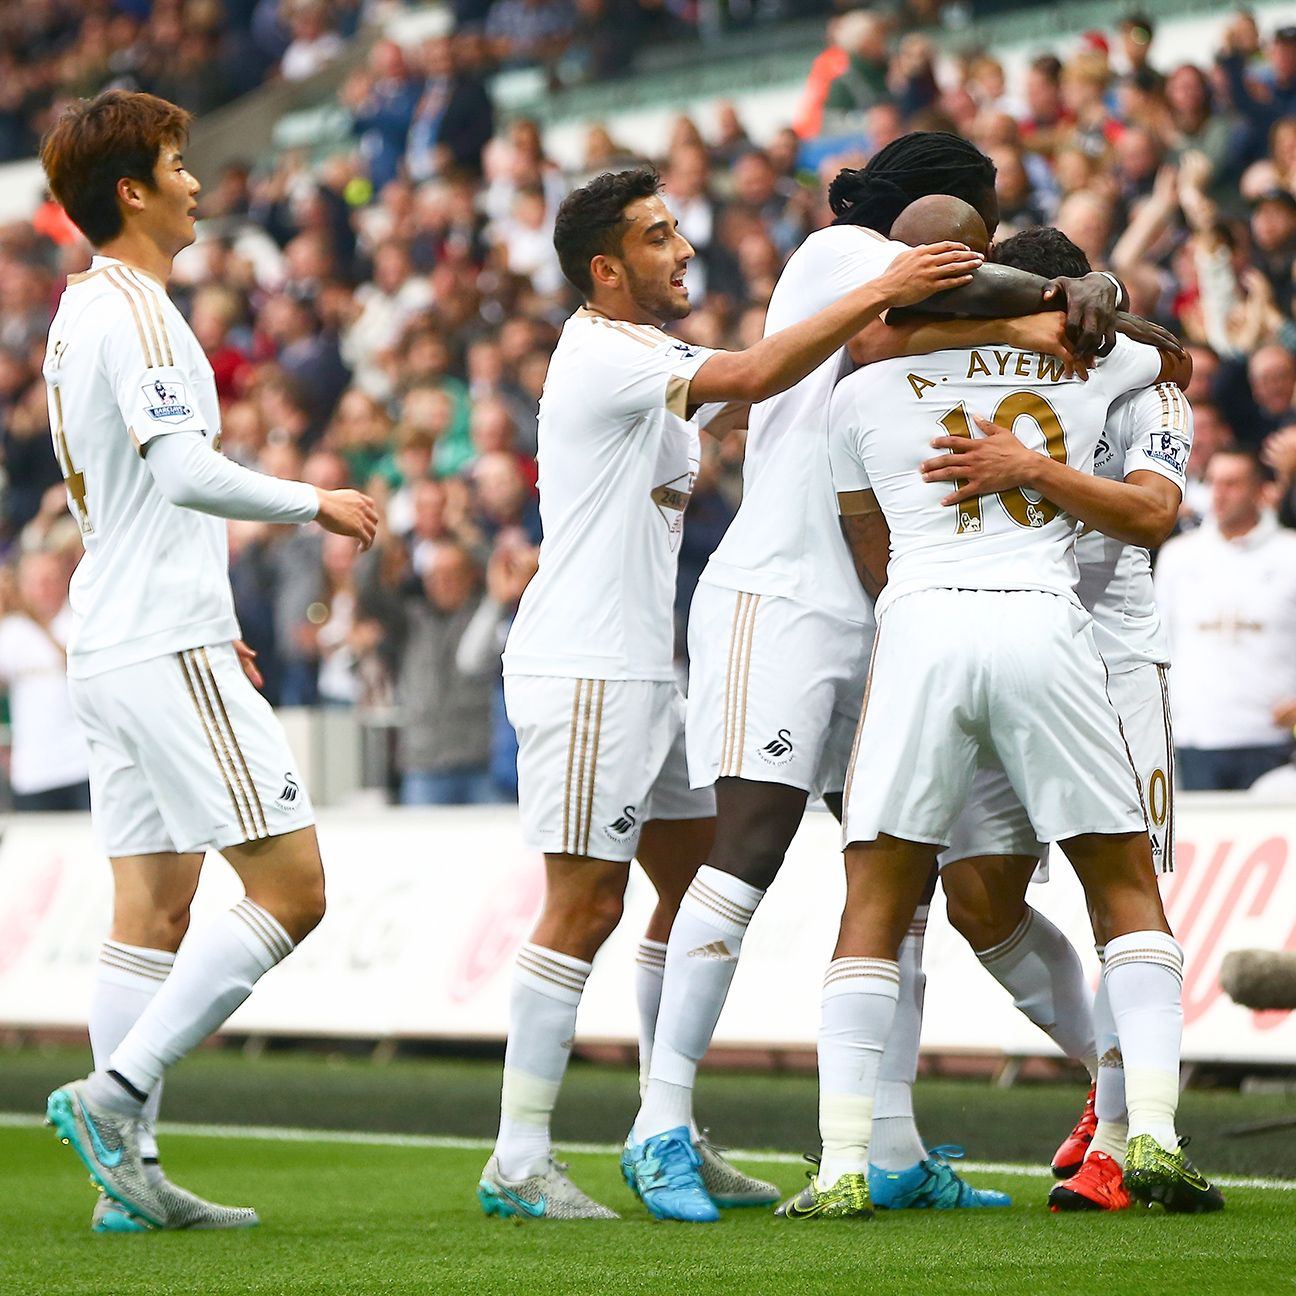 Swansea will be out to collect their first win since Aug. 30 when they face Stoke on Monday.